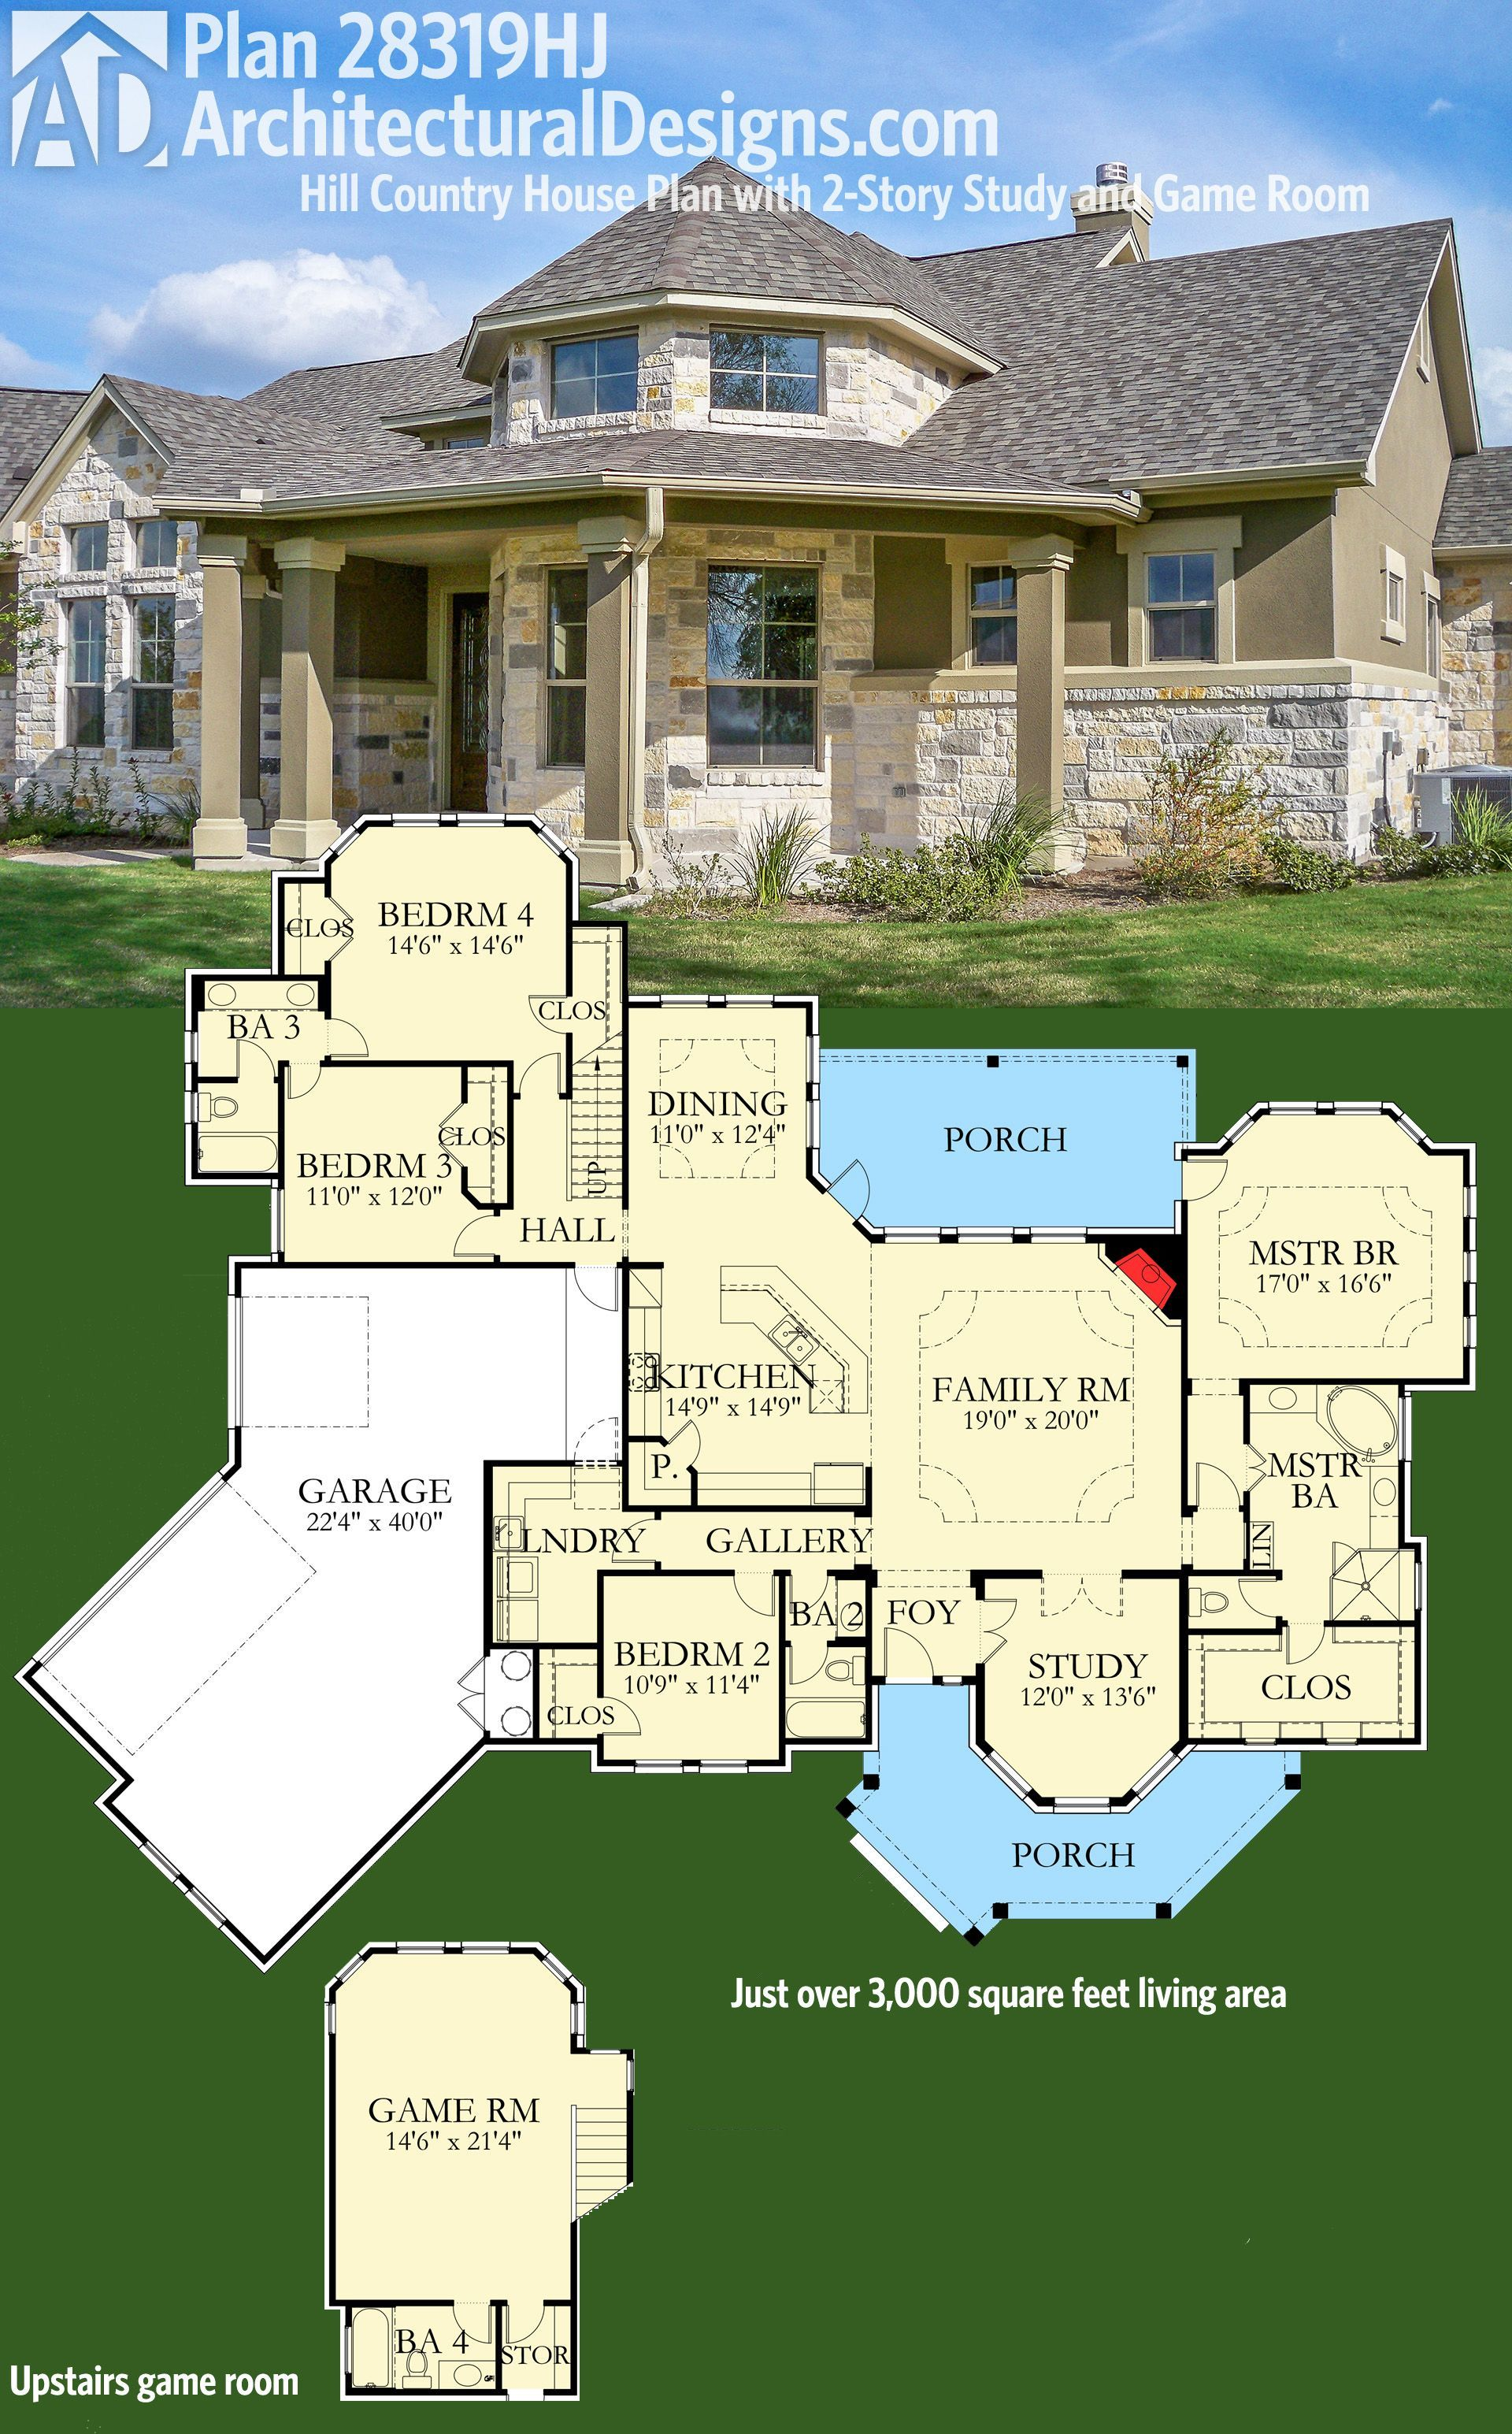 Plan 28319hj Hill Country House Plan With 2 Story Study Architectural Designs House Plan 28319hj Has A 2 Story Study And An Upstairs Game Over 3 000 Square Fe Architectural Design House Plans House